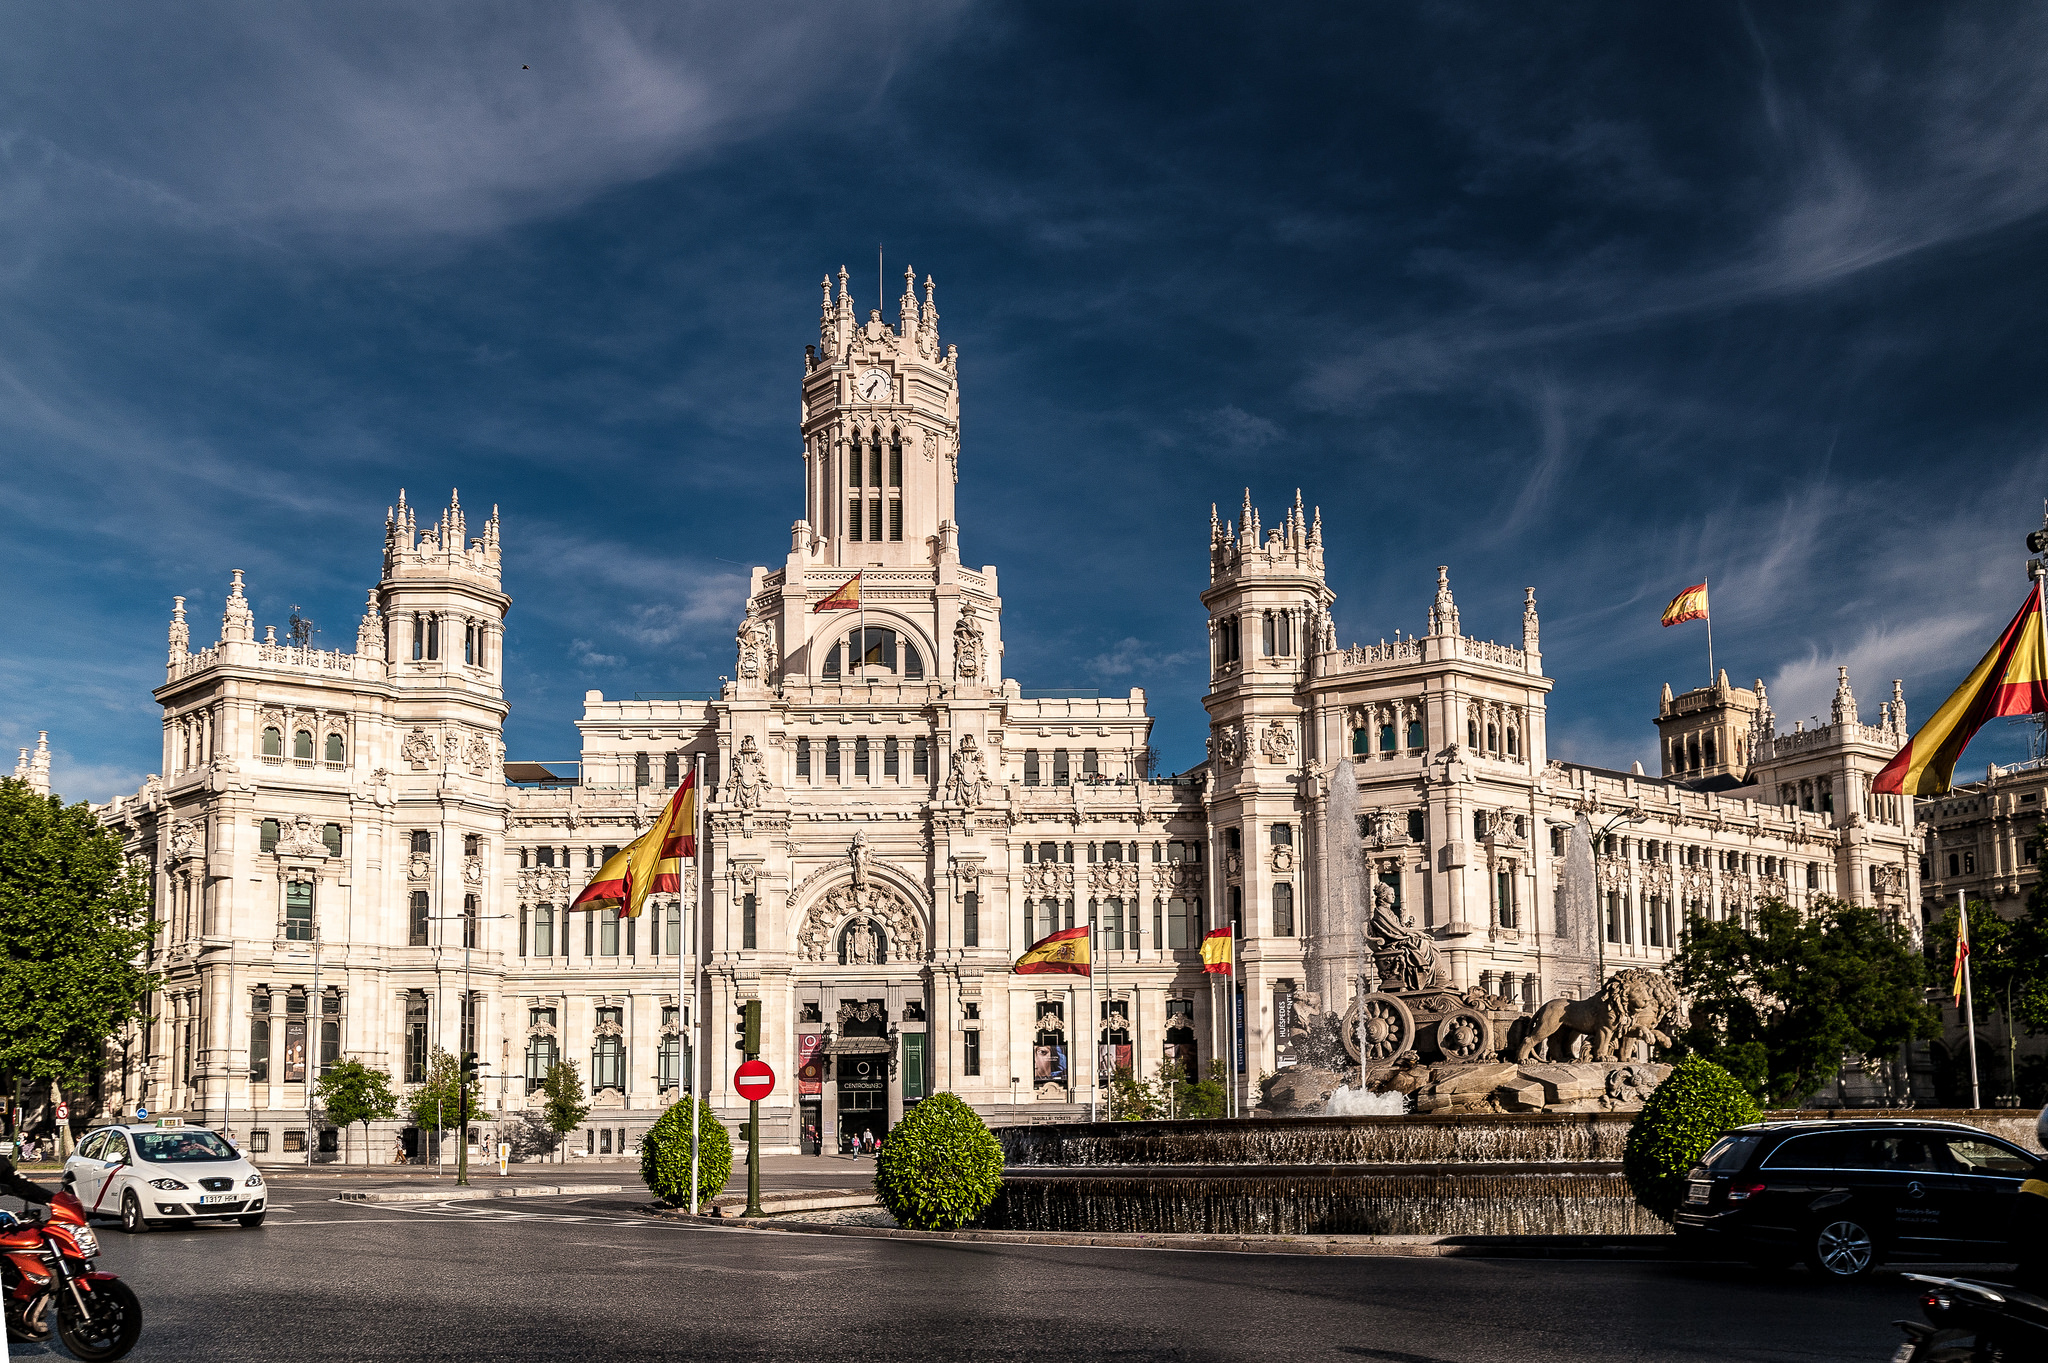 Cibeles Palace - City Hall in Madrid - Thousand Wonders